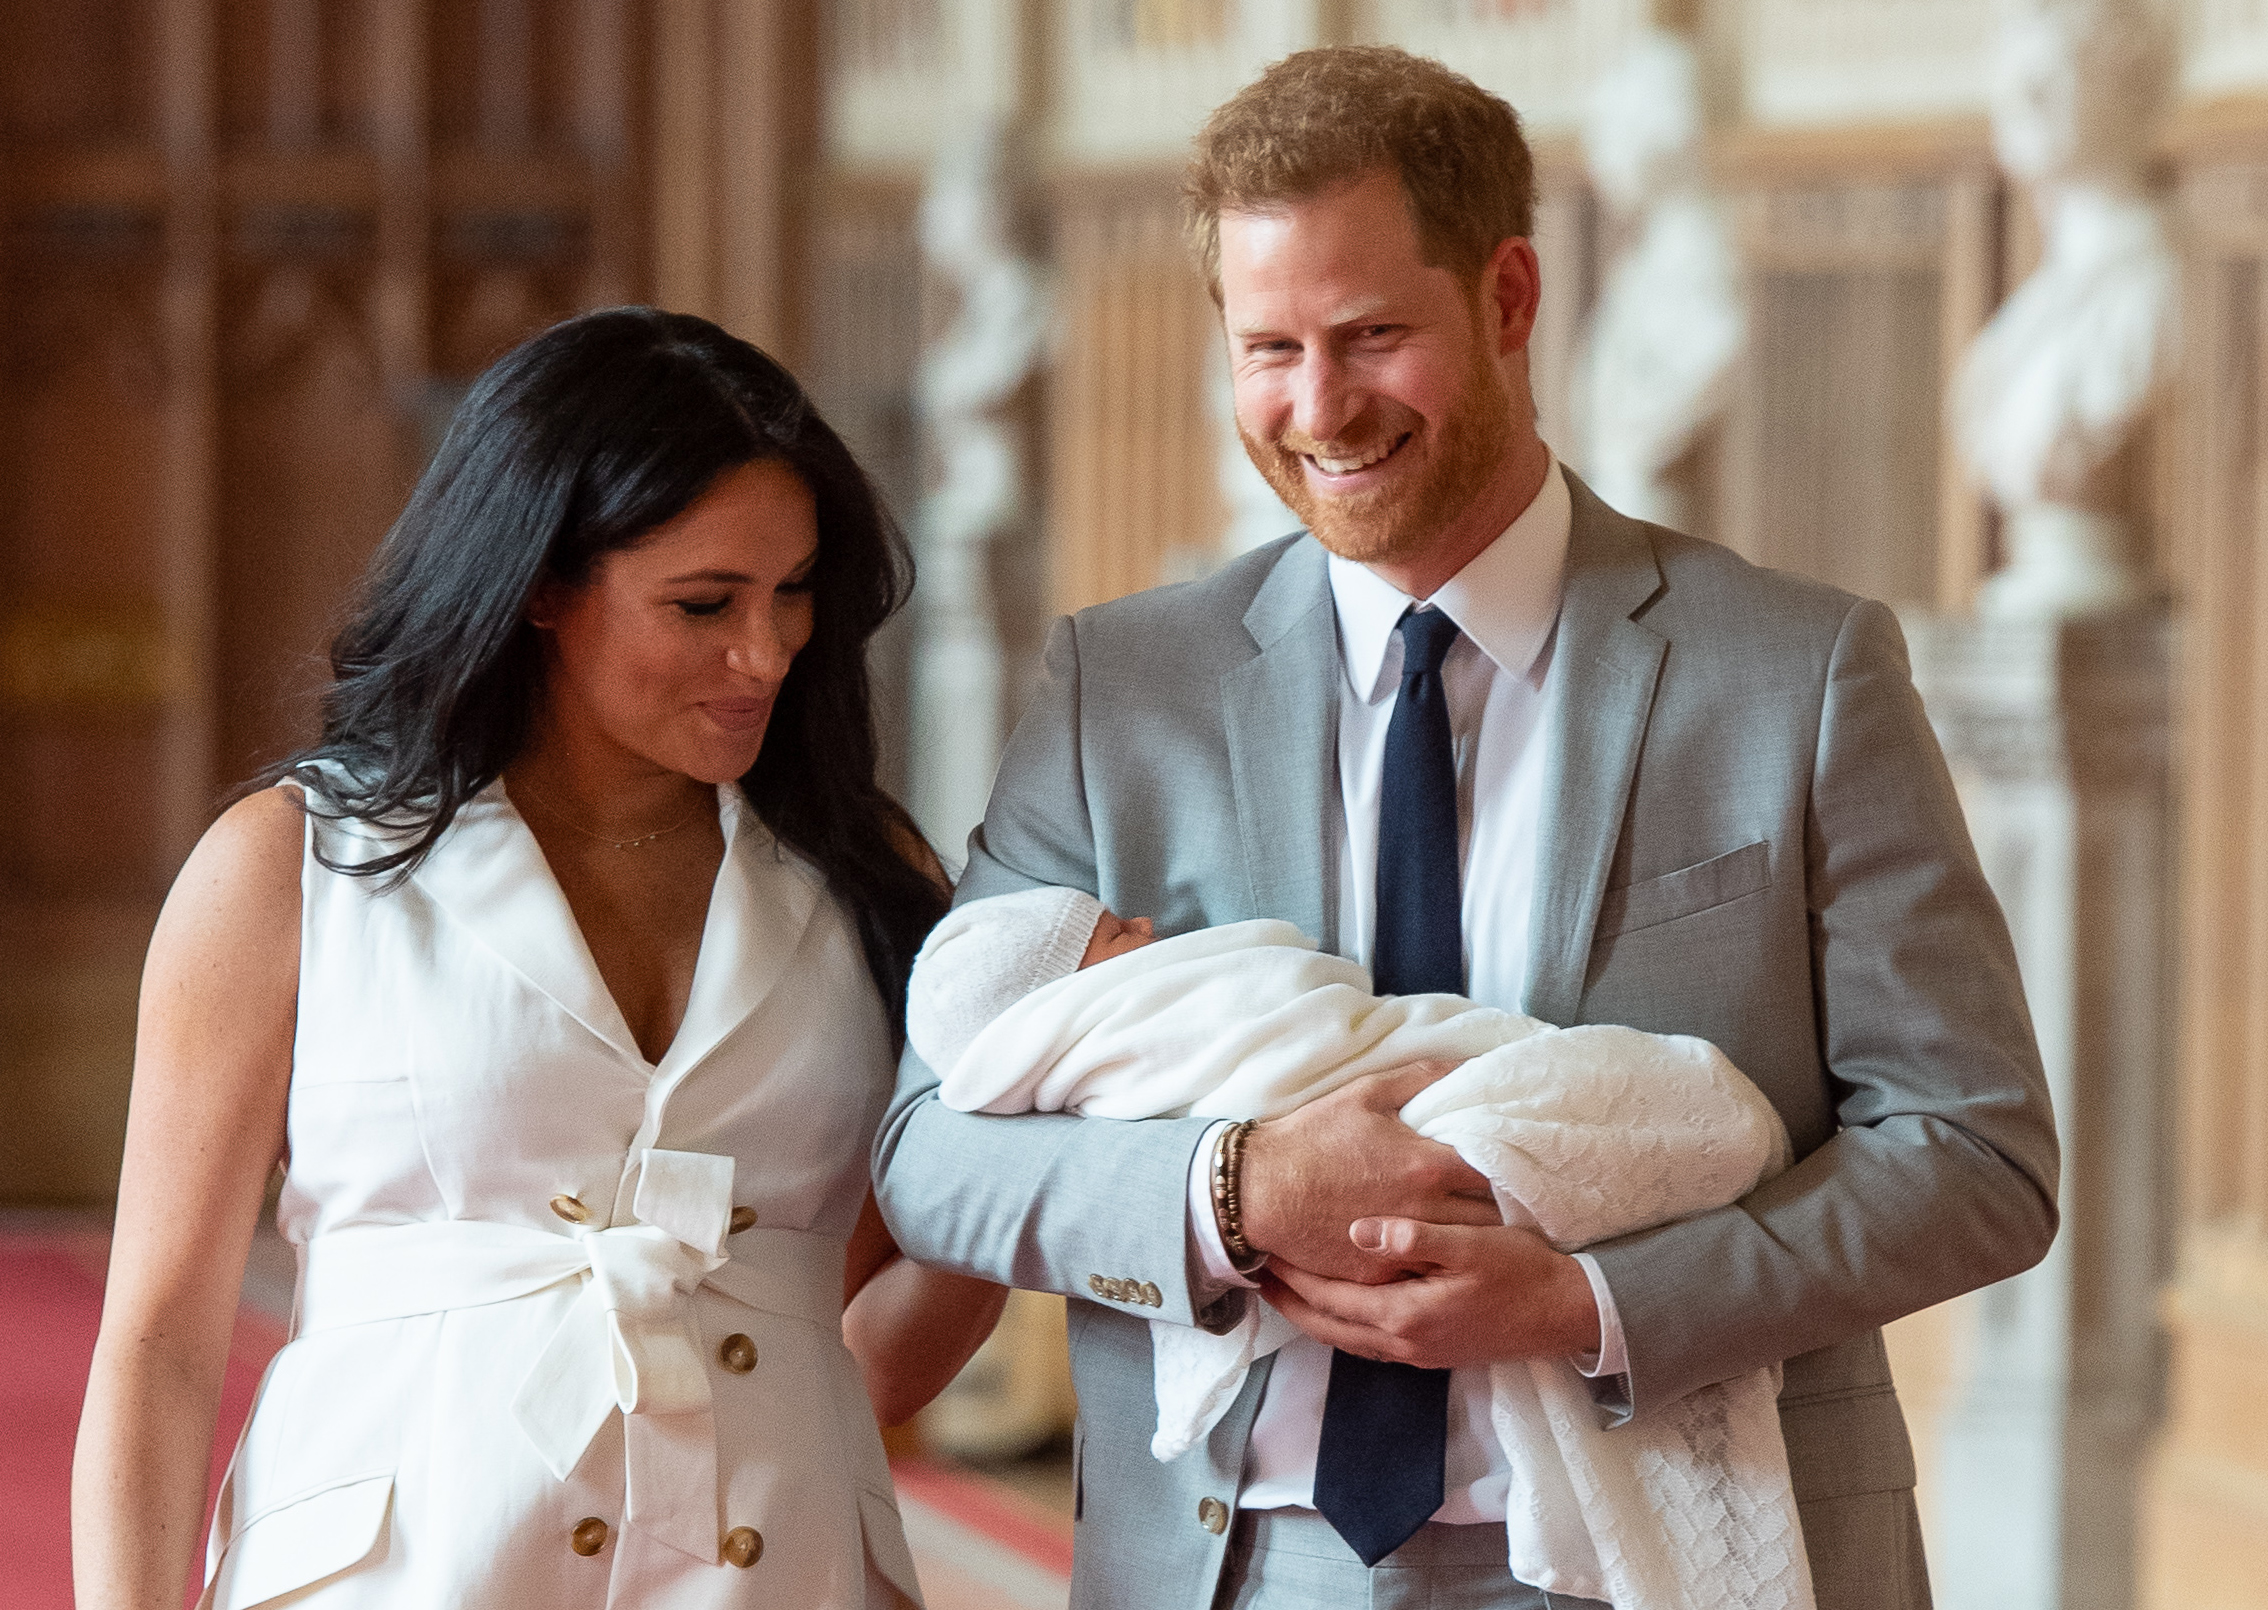 Prince Harry, and Meghan, Duchess of Sussex, pose for a photo with their newborn baby son